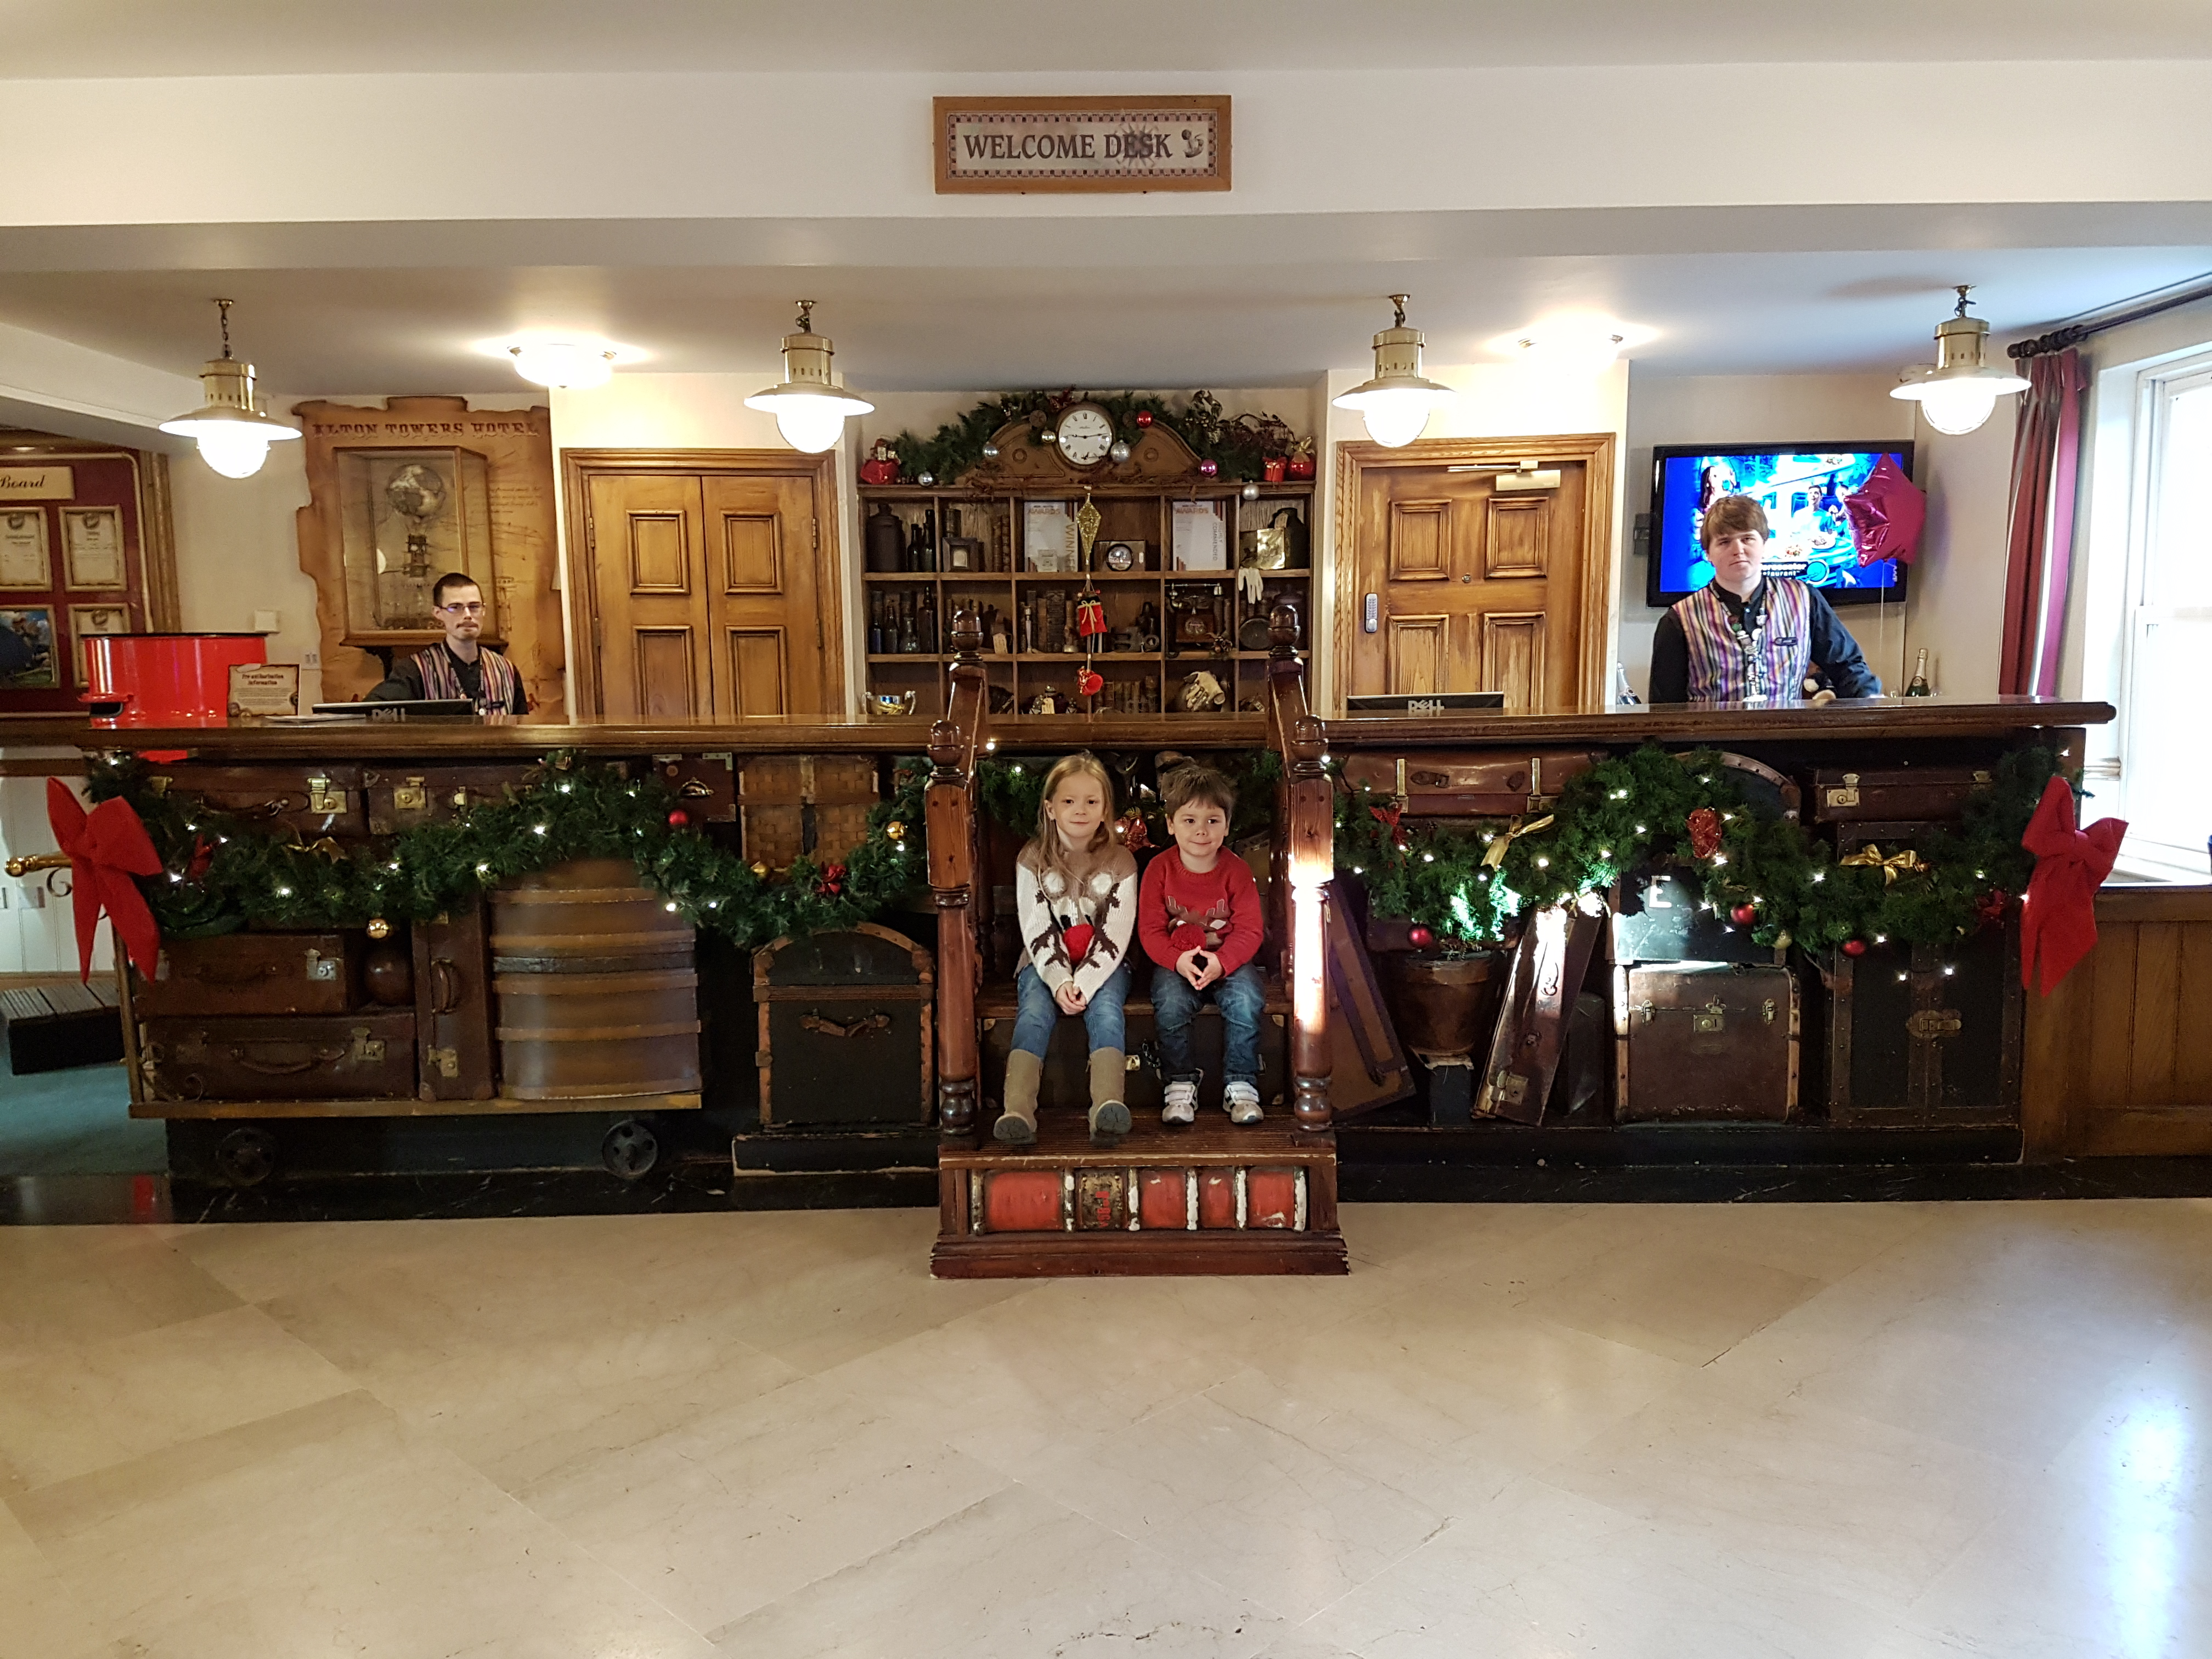 festive reception desk at the Alton Towers hotel